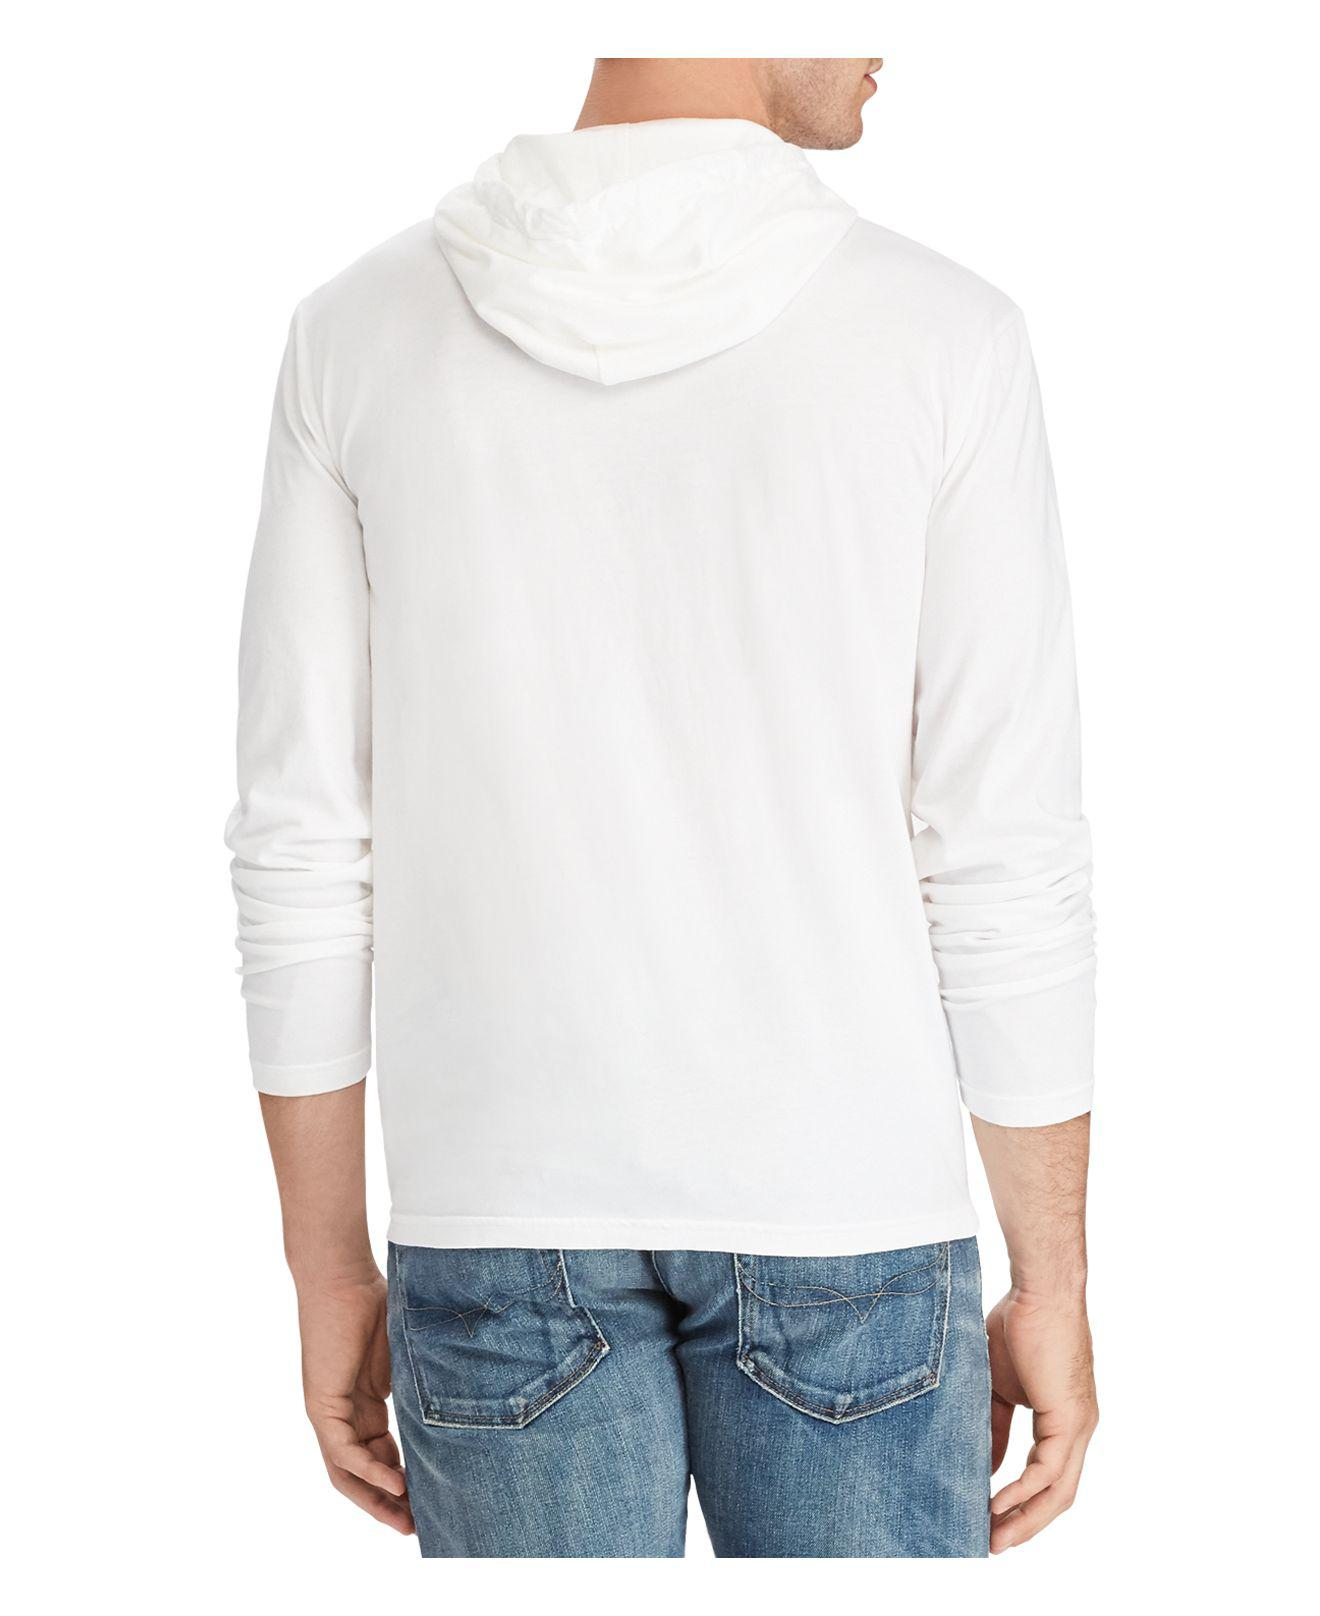 Polo Ralph Lauren Men/'s White//Off White//Weathered White Ivory Hooded T-Shirt